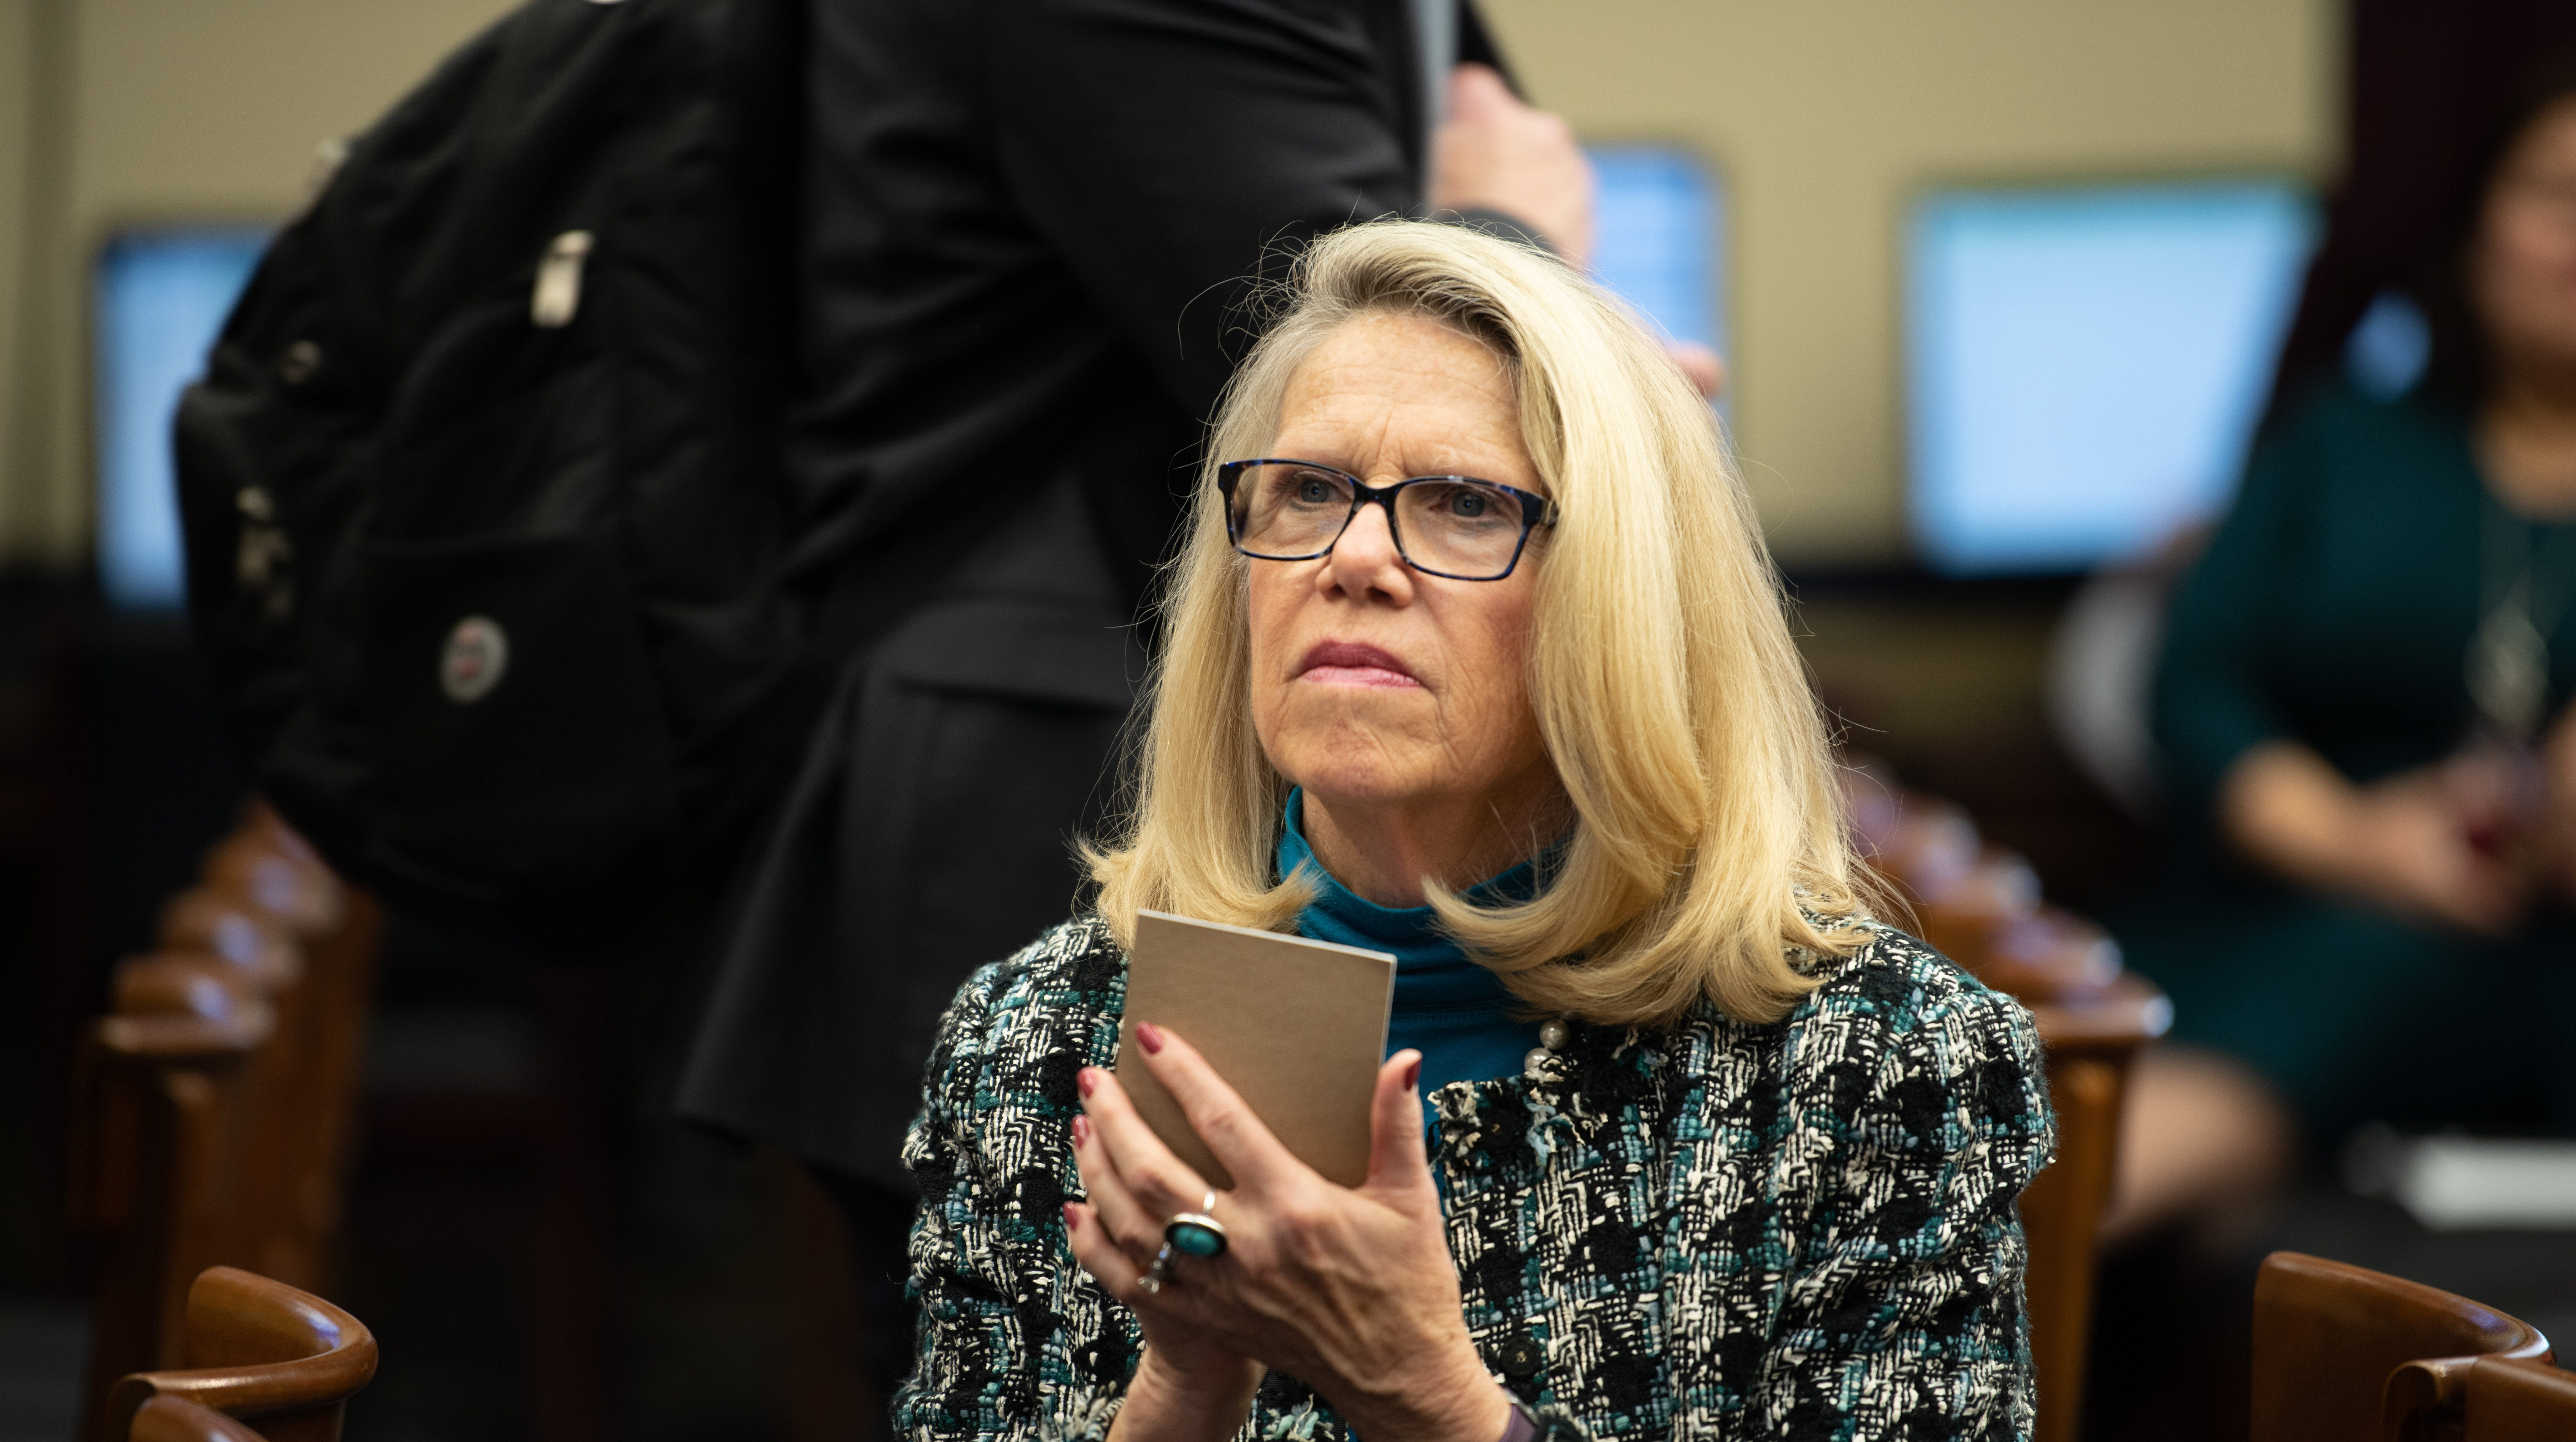 {Nov. 30, 2018} {10:30 a.m.} -- Washington, DC  -- Rep. Elect Carol Miller of West Virginia takes notes ahead of the lottery that will determine the order in which new members of Congress will select their offices. -- Photo by Hannah Gaber, USA TODAY Staff